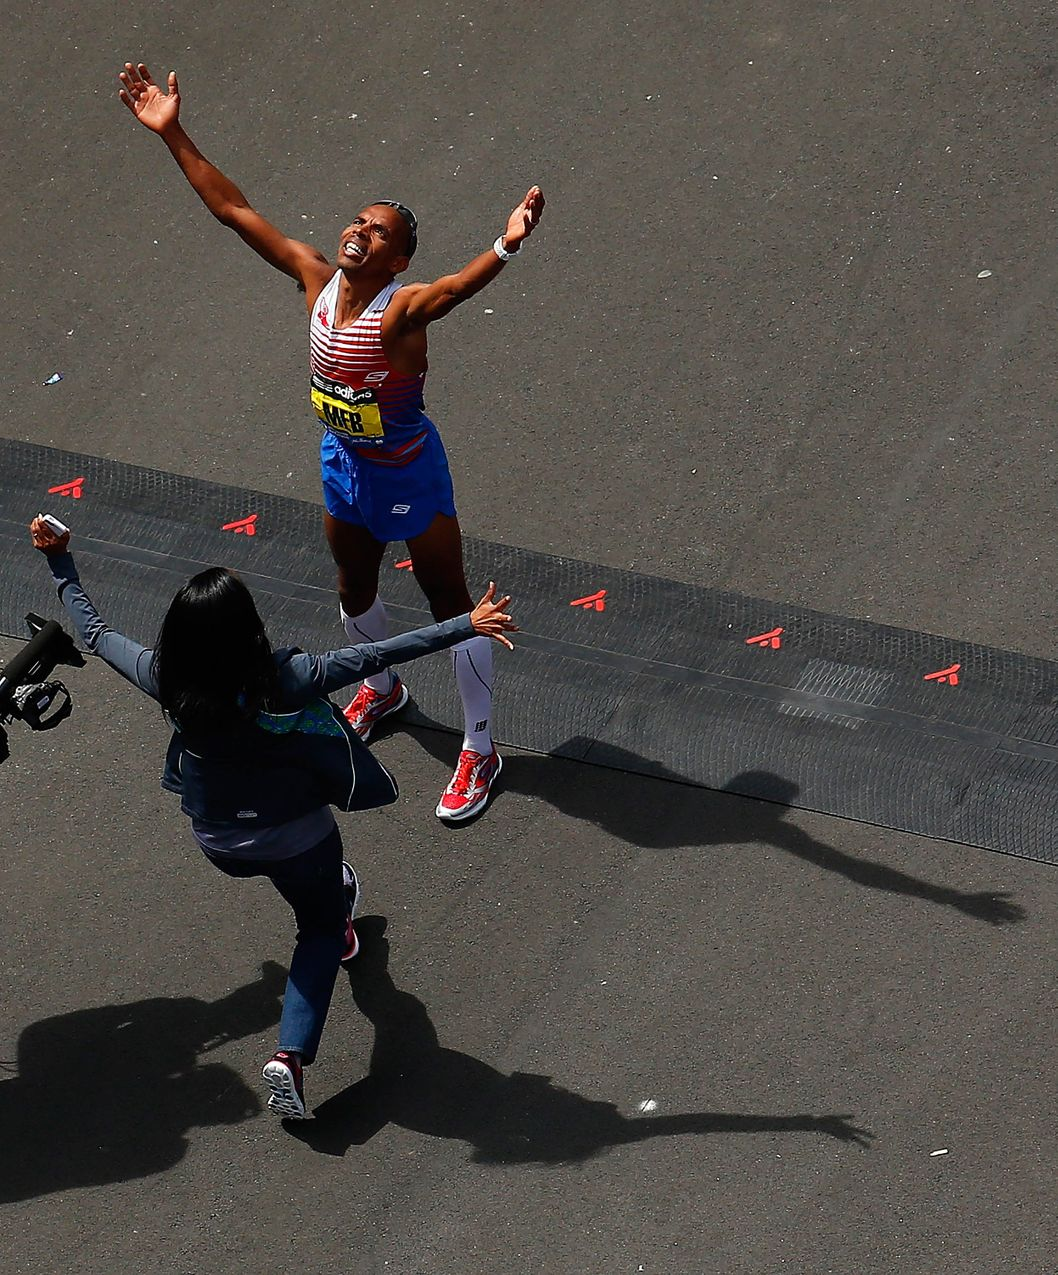 BOSTON, MA - APRIL 21:  Meb Keflezighi of the United States reacts after coming in first place in the 2014 B.A.A. Boston Marathon on April 21, 2014 in Boston, Massachusetts. Meb becomes the first American winner of the Boston Marathon since 1983. Today marks the 118th Boston Marathon; security presence has been increased this year, due to two bombs that were detonated at the finish line last year, killing three people and injuring more than 260 others.  (Photo by Jared Wickerham/Getty Images)